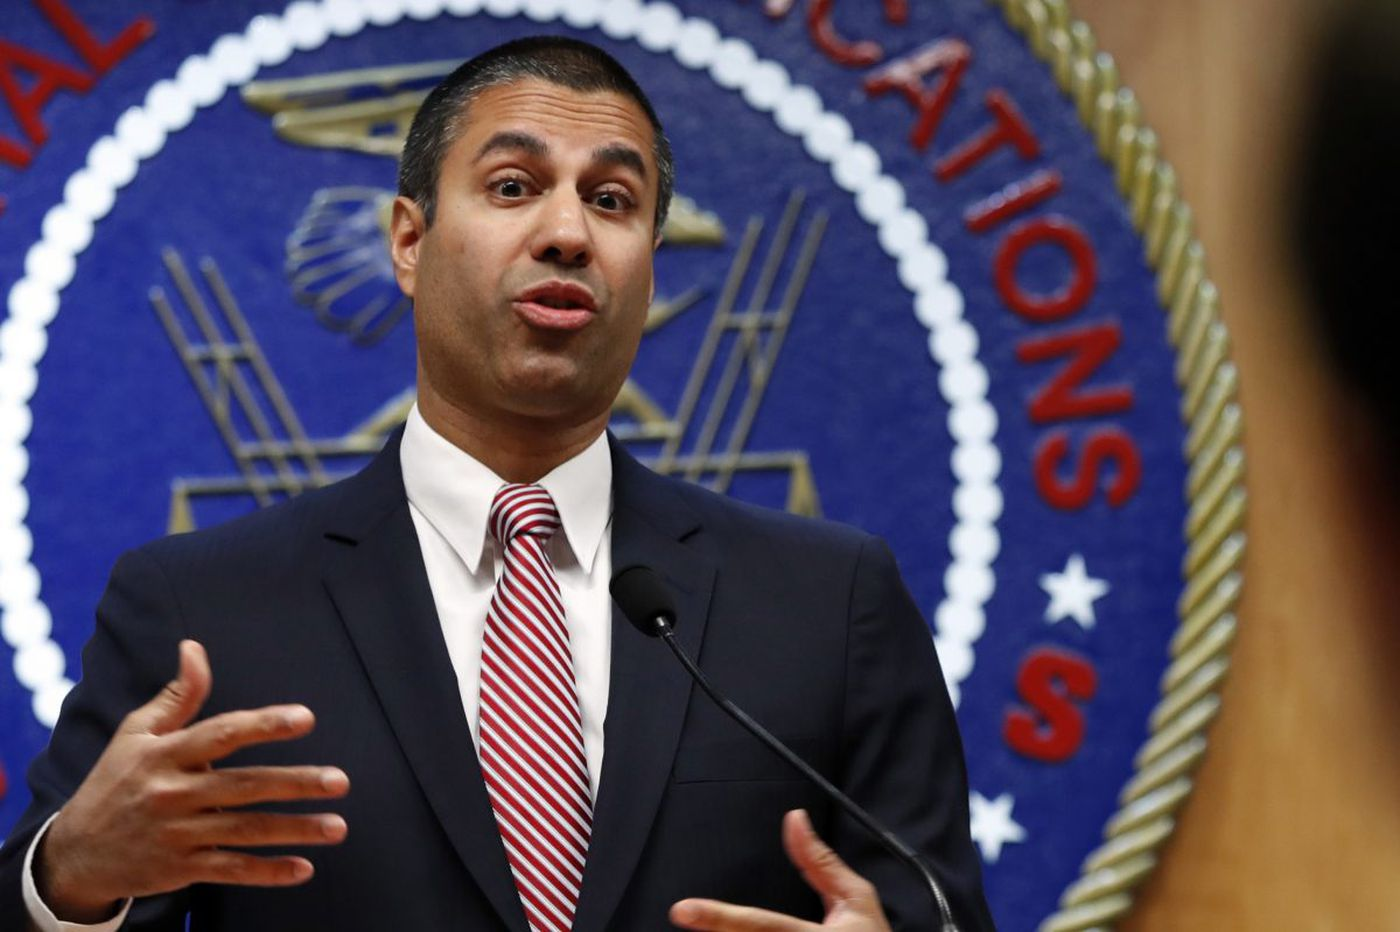 Net neutrality to get U.S. Senate vote as Democrats force issue